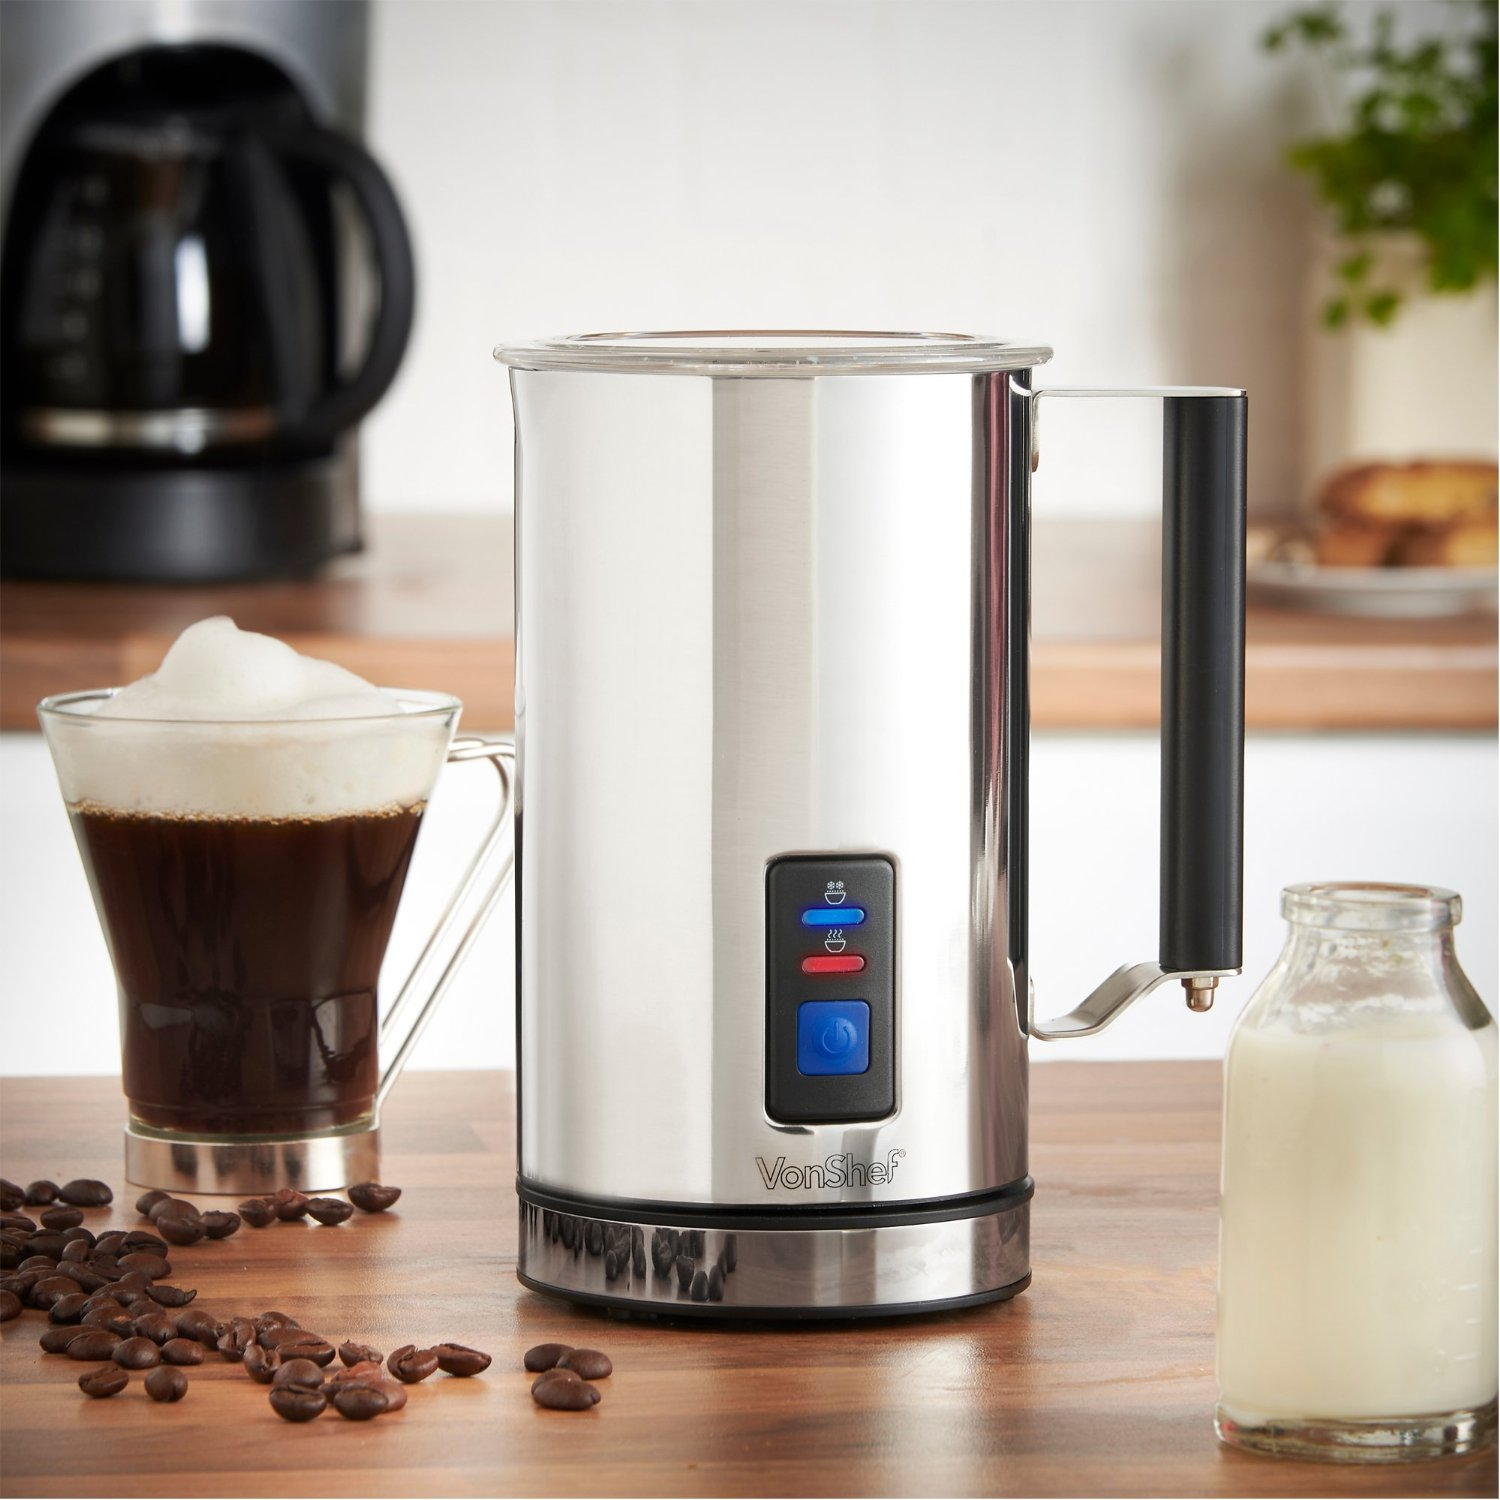 VonShef Premium Electric Milk Frother Review